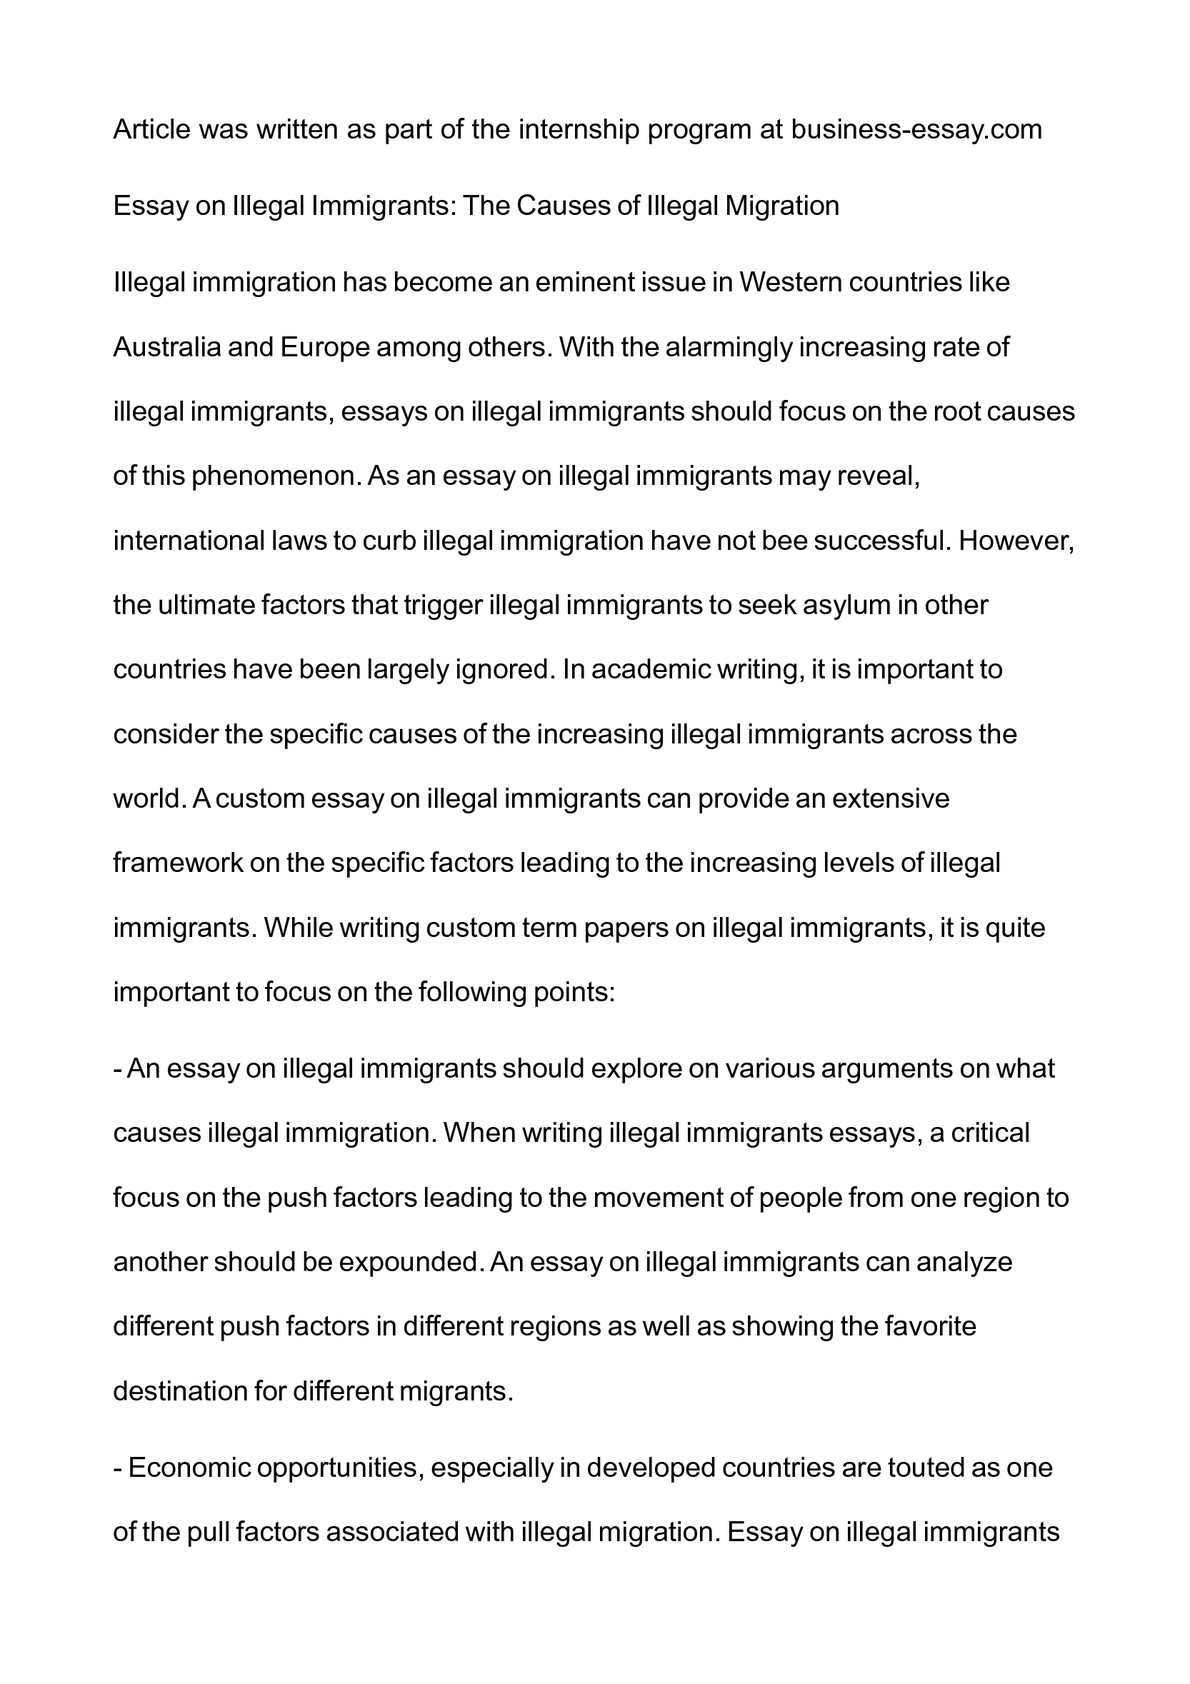 illegal immigration essay calaméo essay on illegal immigrants the causes of illegal migration